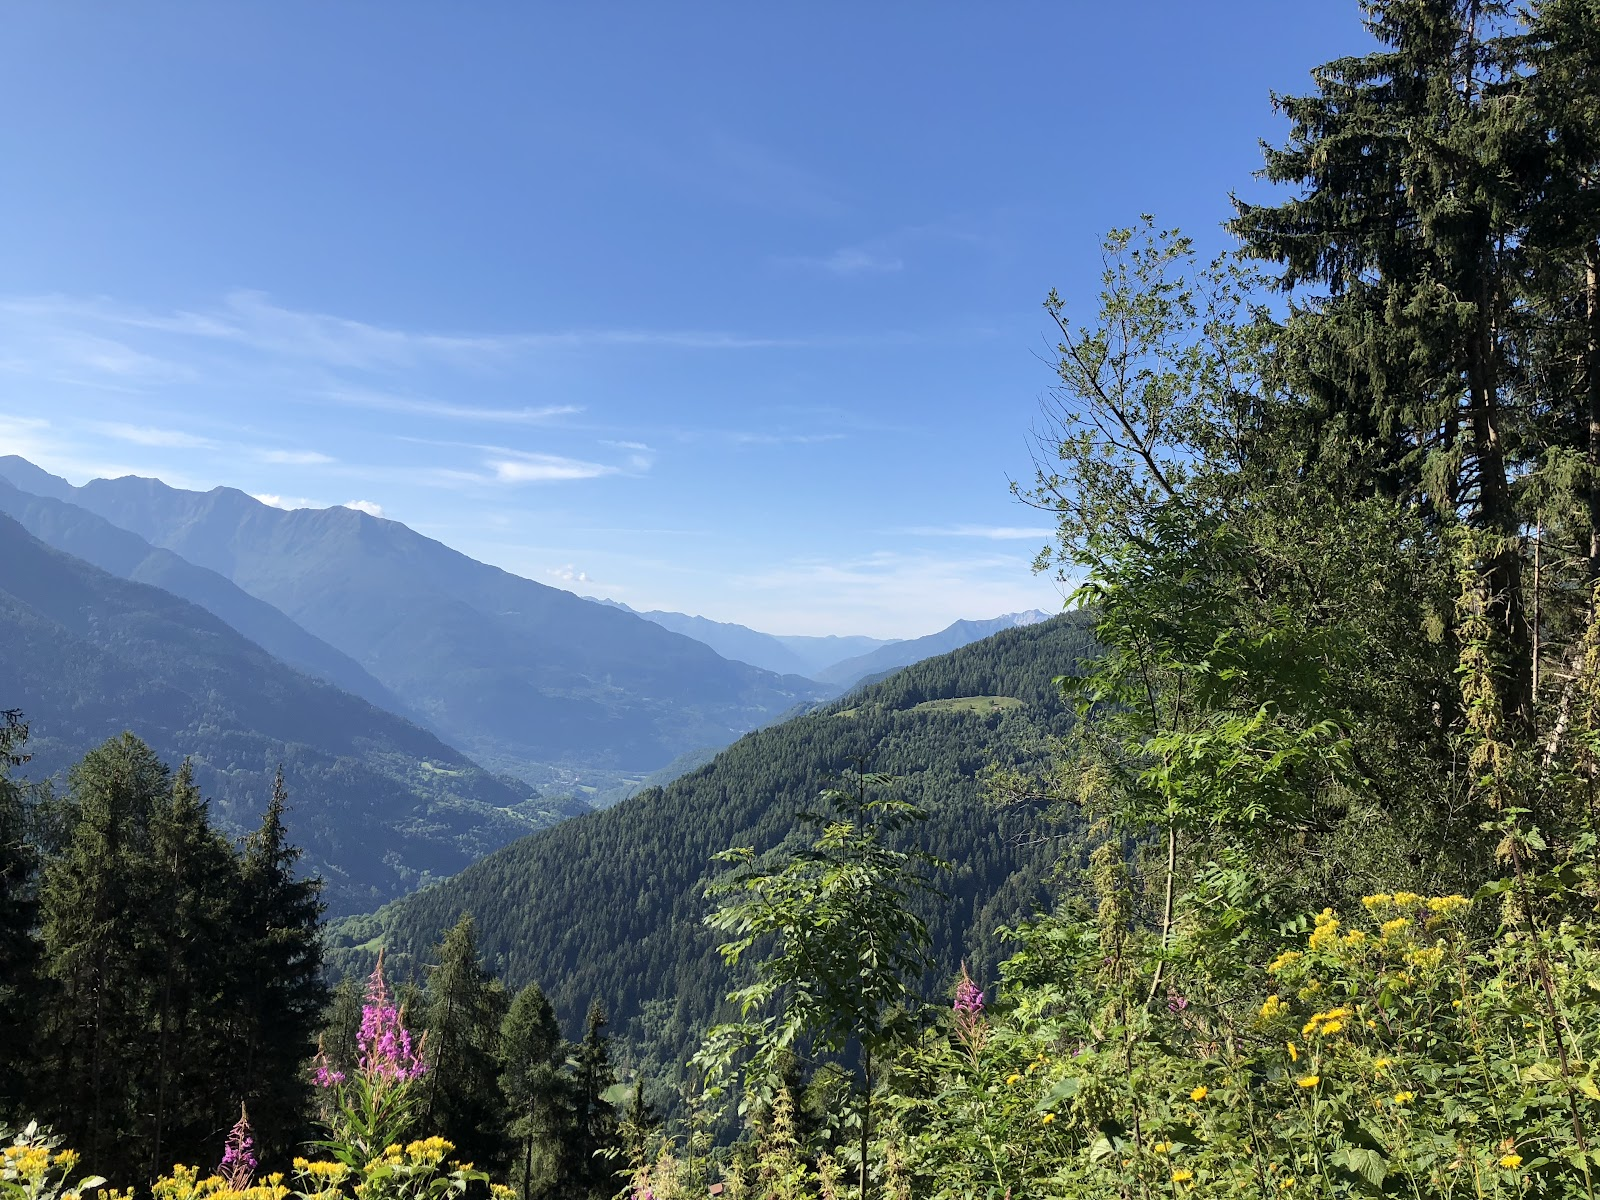 Cycling Mortirolo from Edolo - distant view of mountains and sky